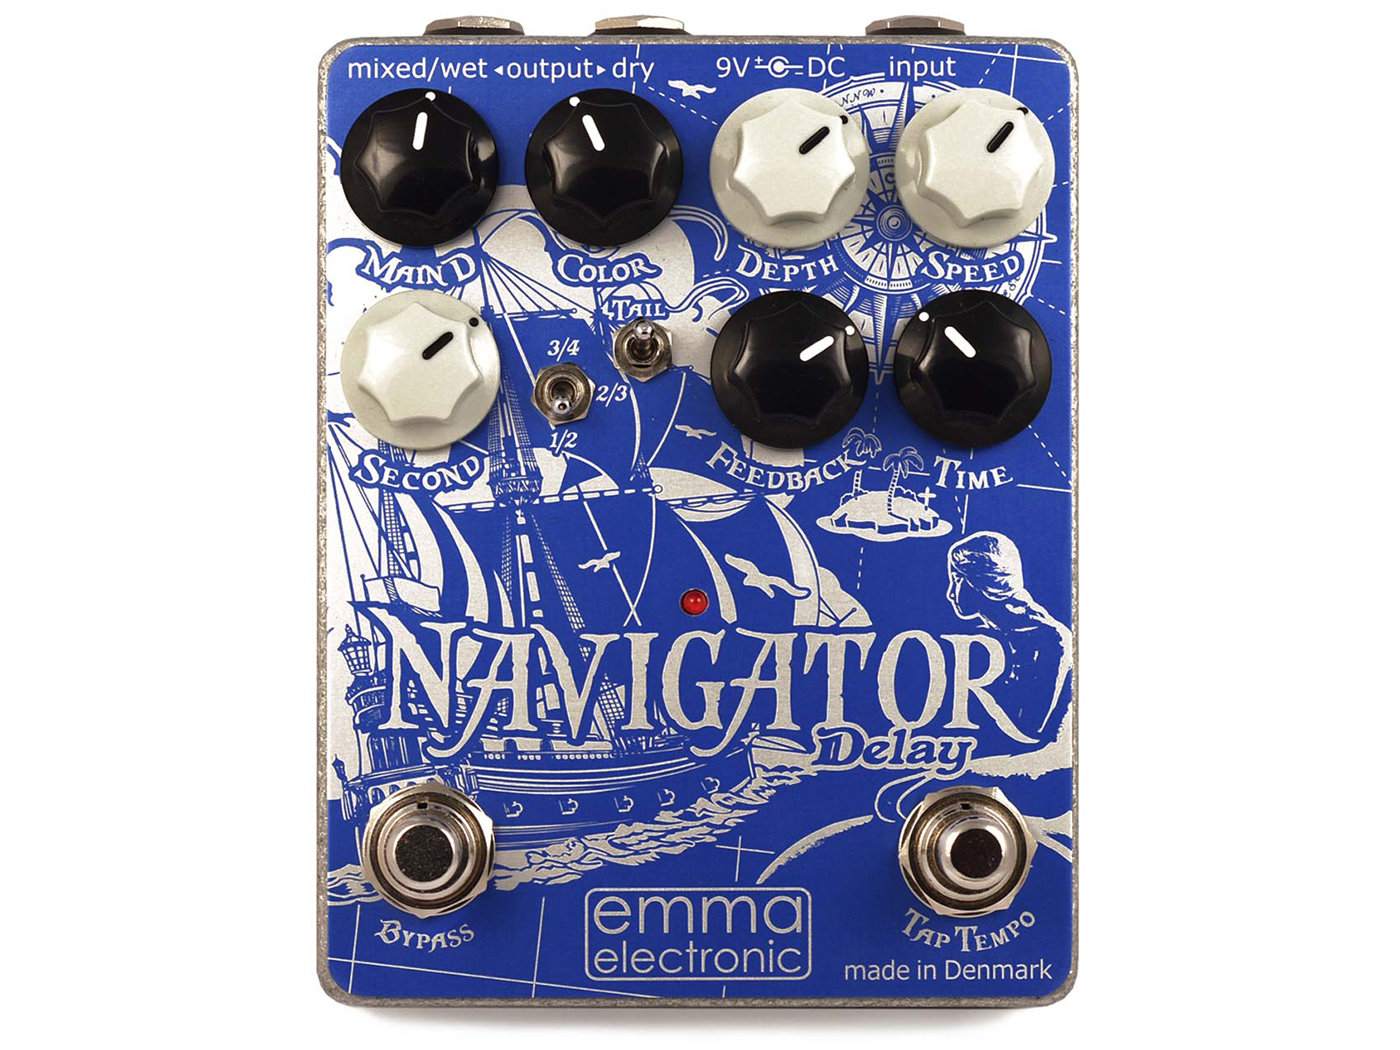 Emma Electronic releases the Navigator Delay